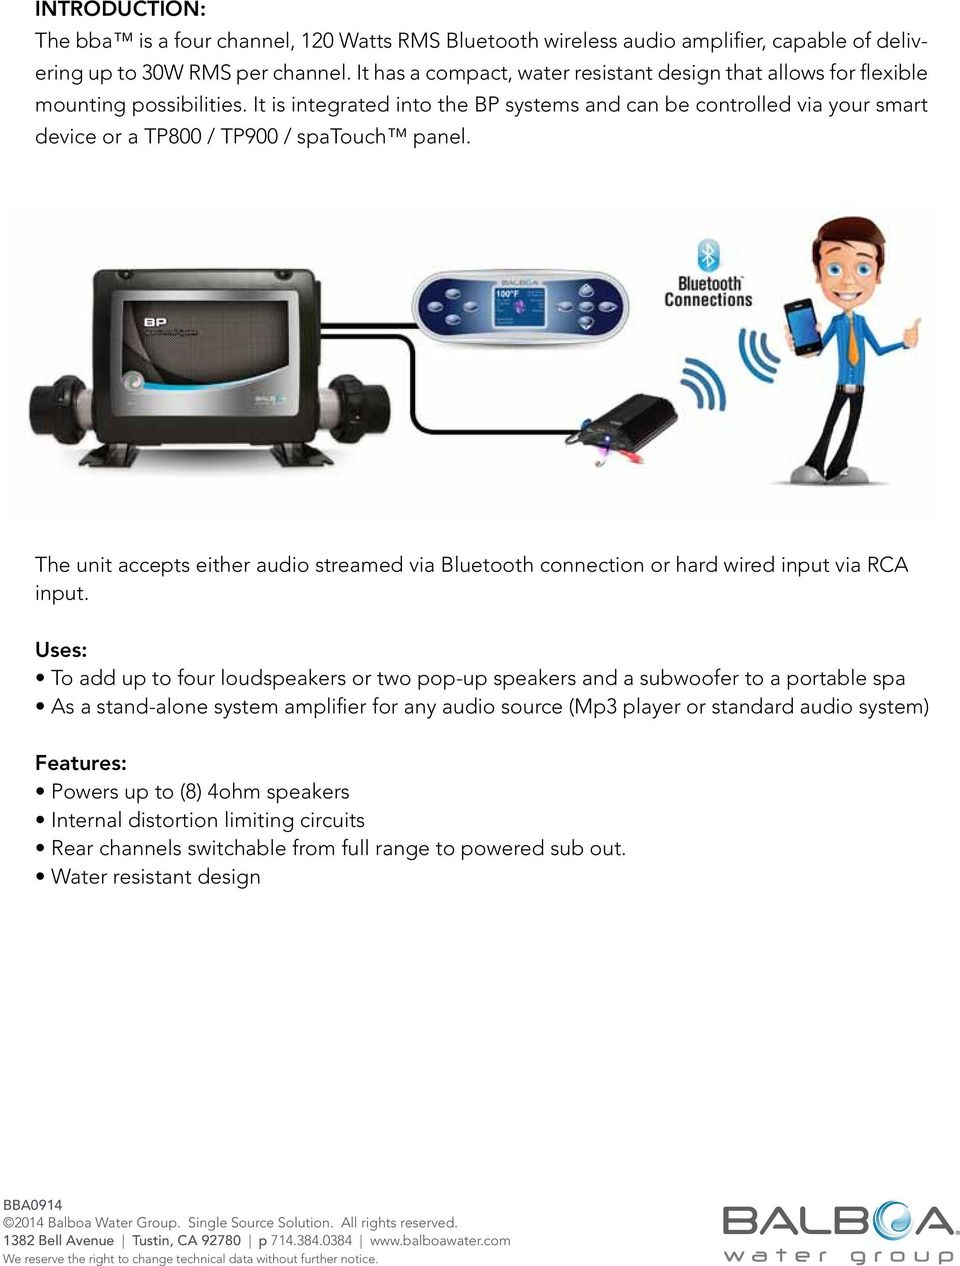 Bba Balboa Bluetooth Audio Amp Installation User Guide Pdf Hot Tub Wiring Diagrams Together With Electrical It Is Integrated Into The Bp Systems And Can Be Controlled Via Your Smart Device Or